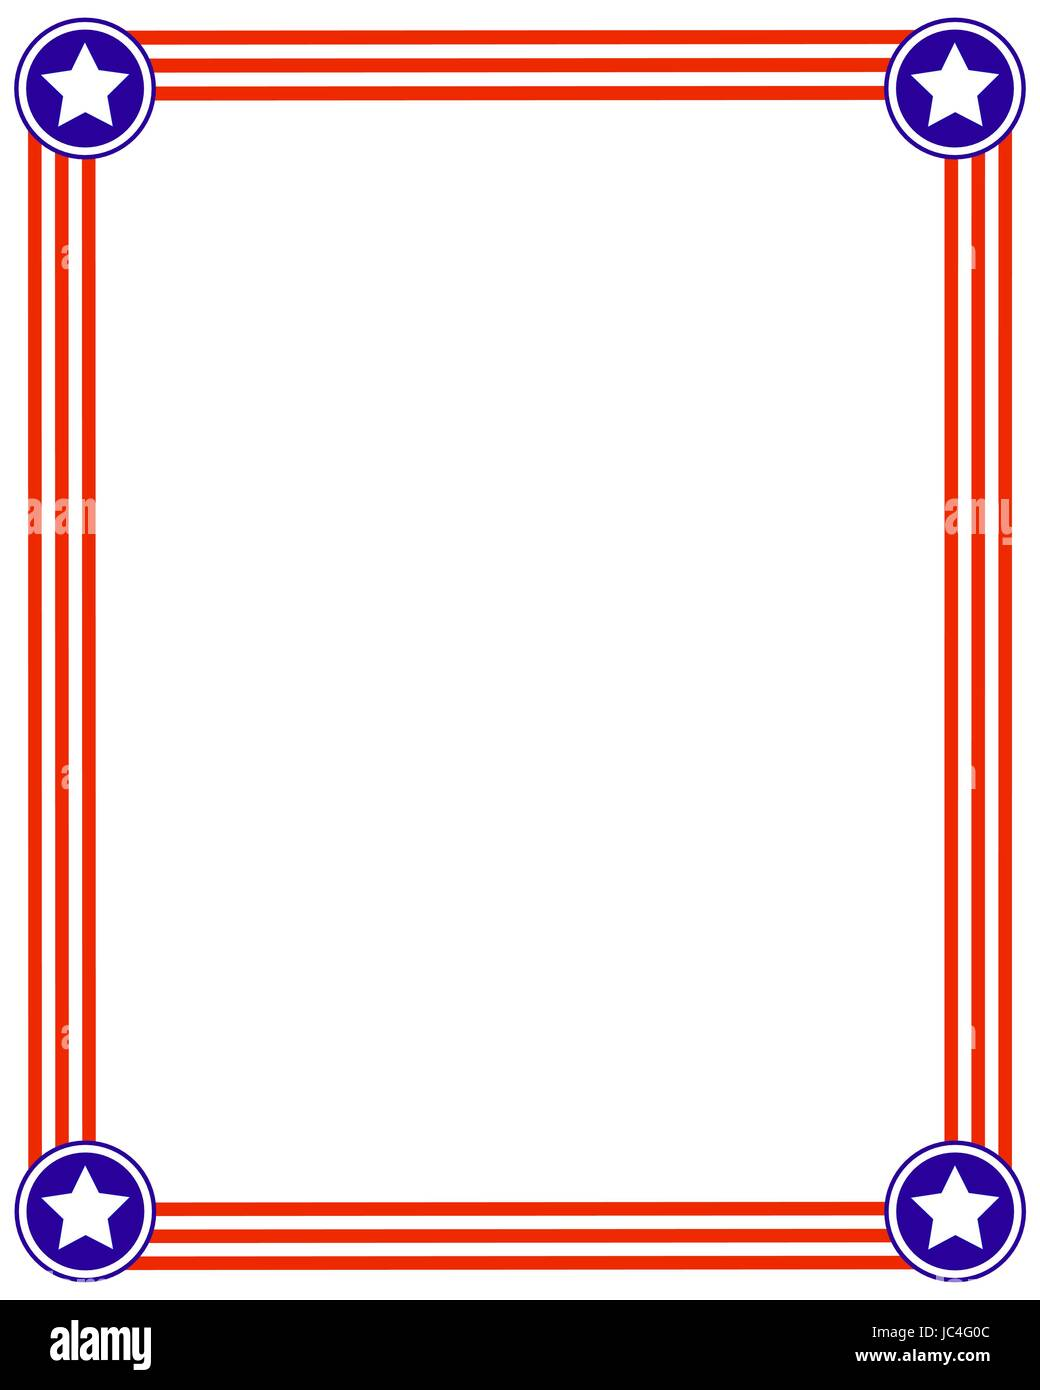 frame usa flag background with stars design template american flag